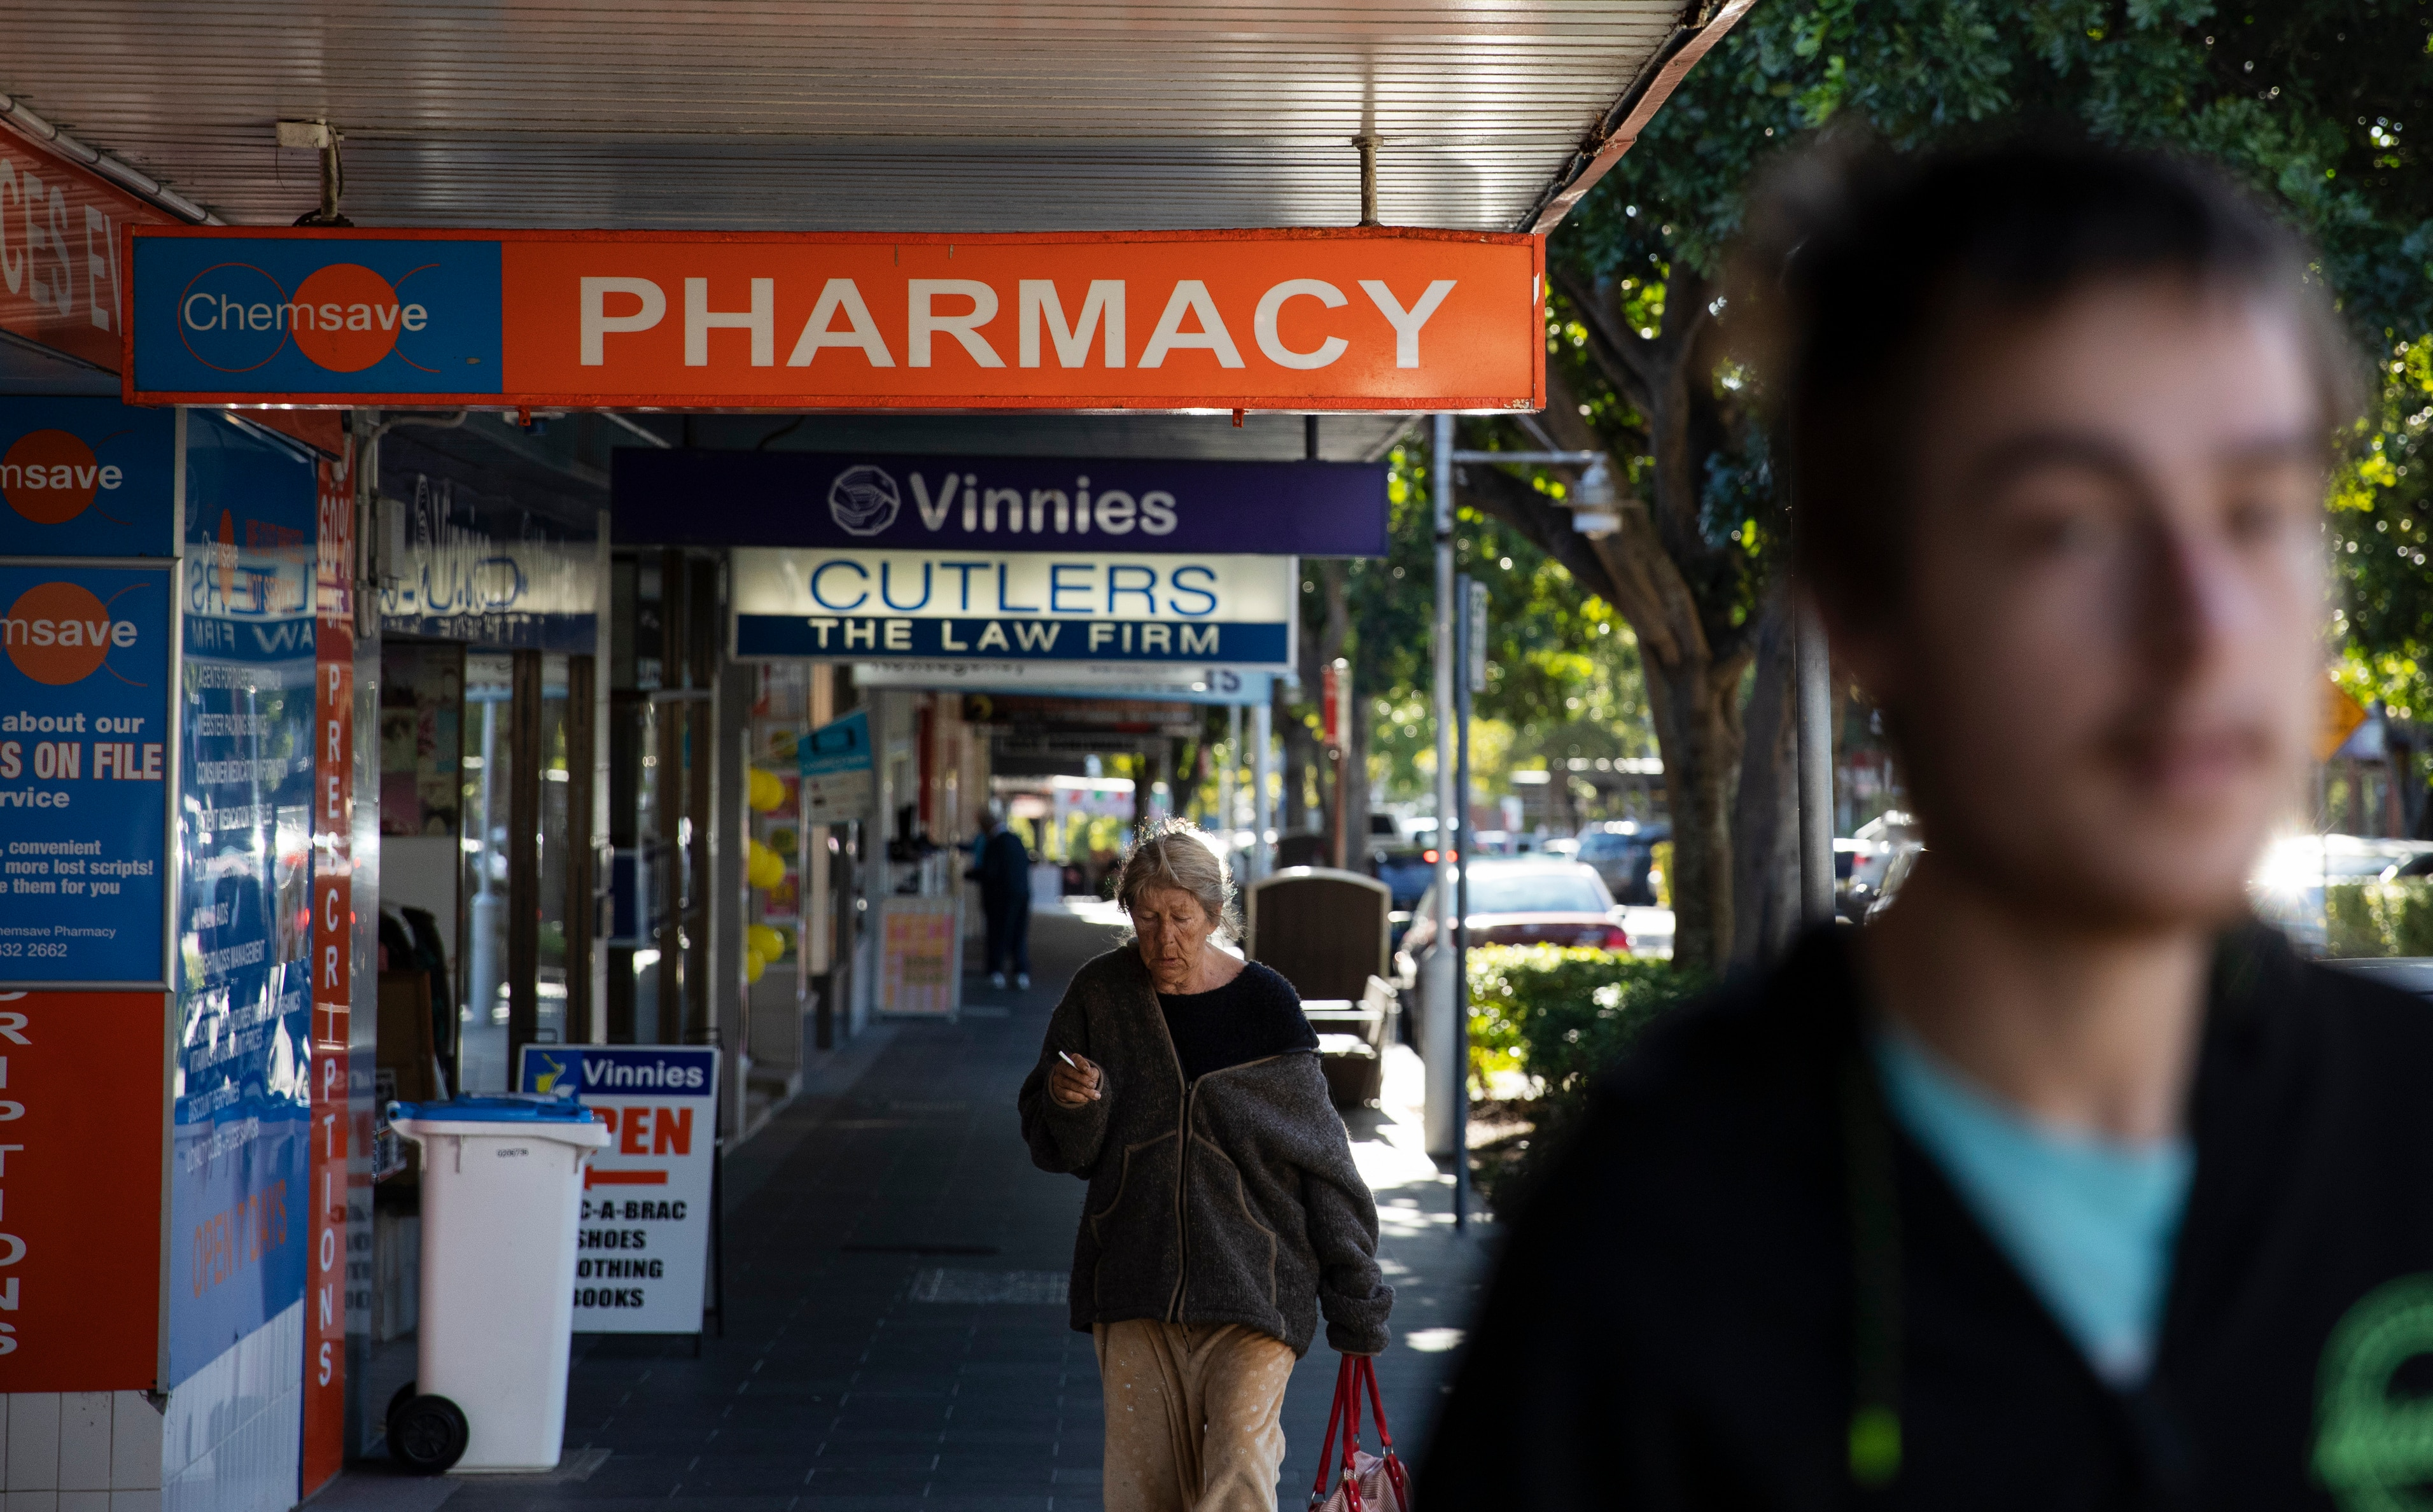 Pharmacies have been given special permission to operate 24 hours a day during the pandemic.